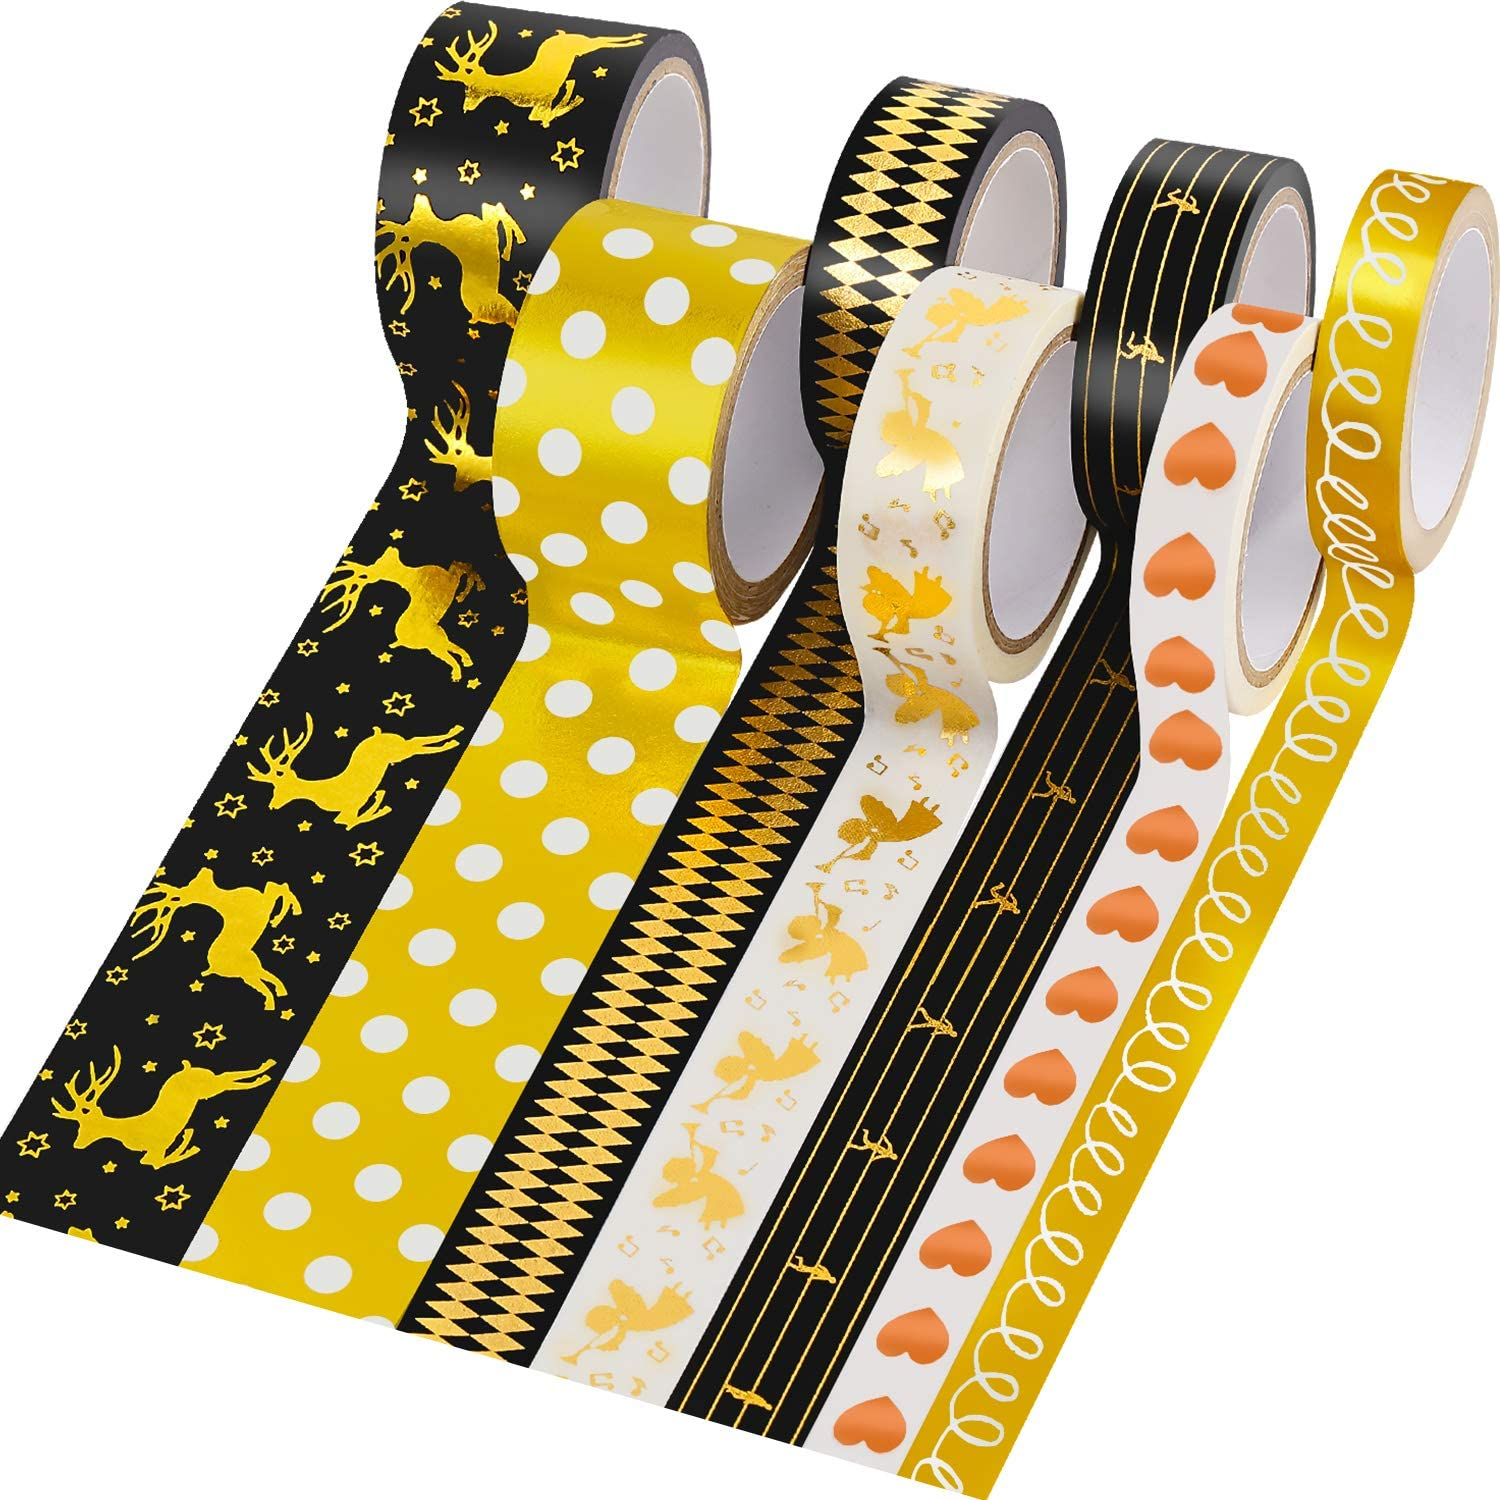 7 Rolls Washi Tape Gold Foil Masking Tape Scrapbooking Decorative Tapes Sticky Adhesive Paper Tape Assorted Print Tape with Lasting Color for Card Making Crafts, Frames Decoration